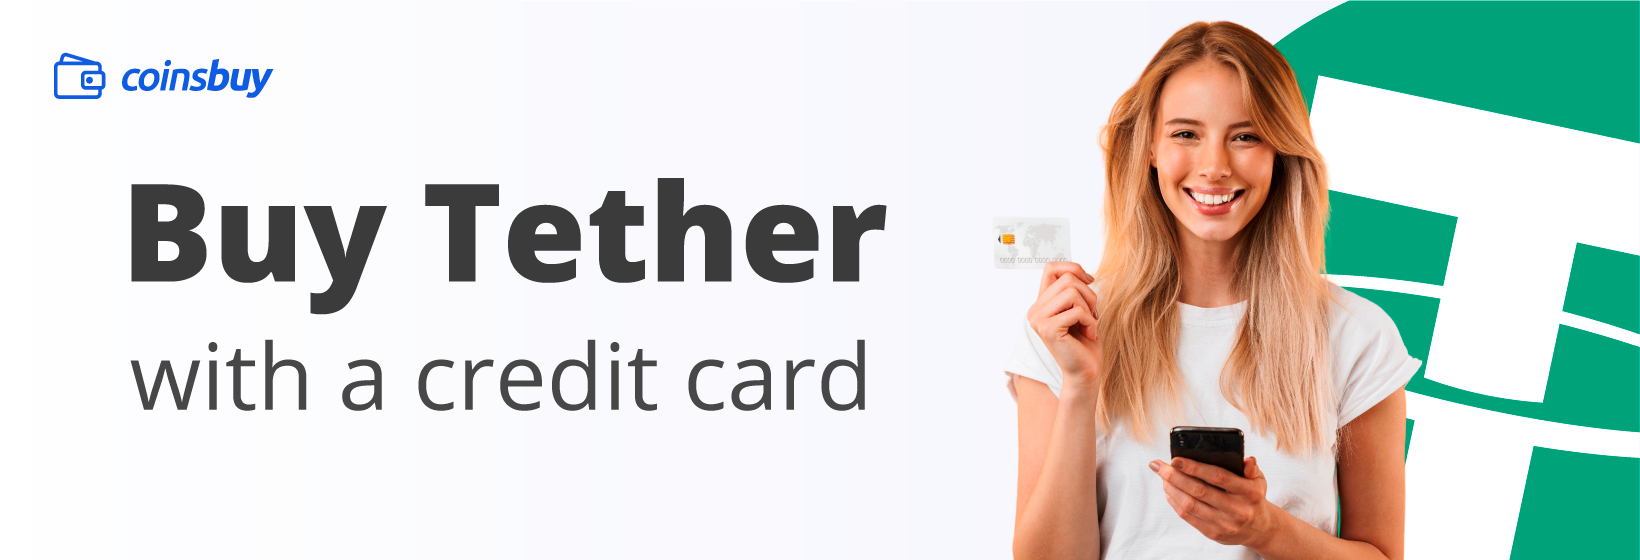 Buy Tether with a credit card